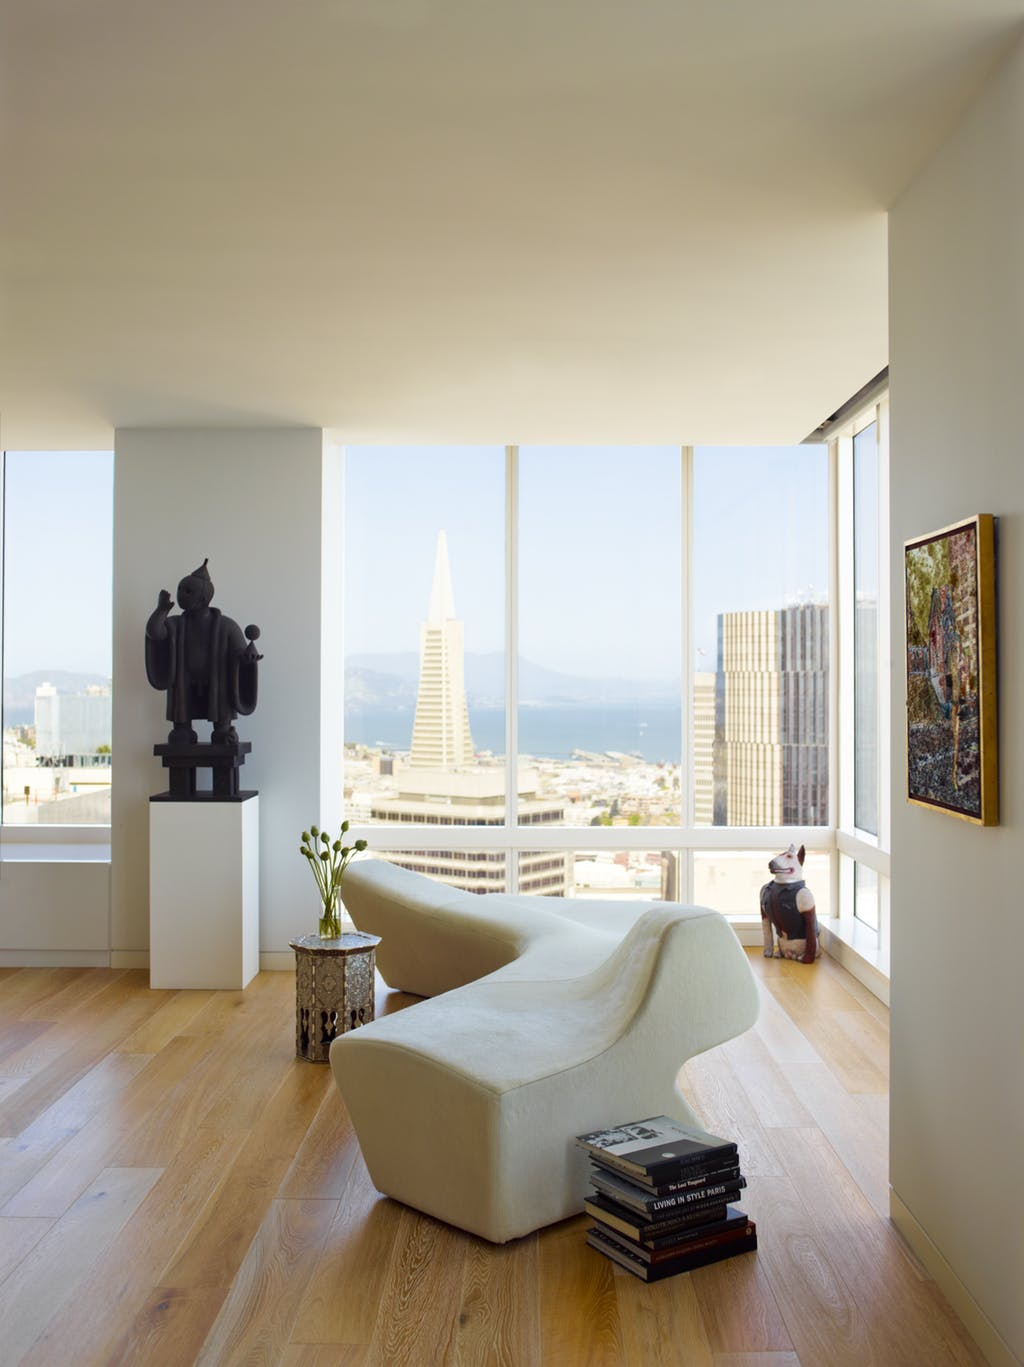 Top Interior Designers in San Francisco - Pamela Babey - BAMO - White living rooms - Modern - serpentine sofas - luxury furniture top interior designers Top Interior Designers: Pamela Babey of BAMO bamo